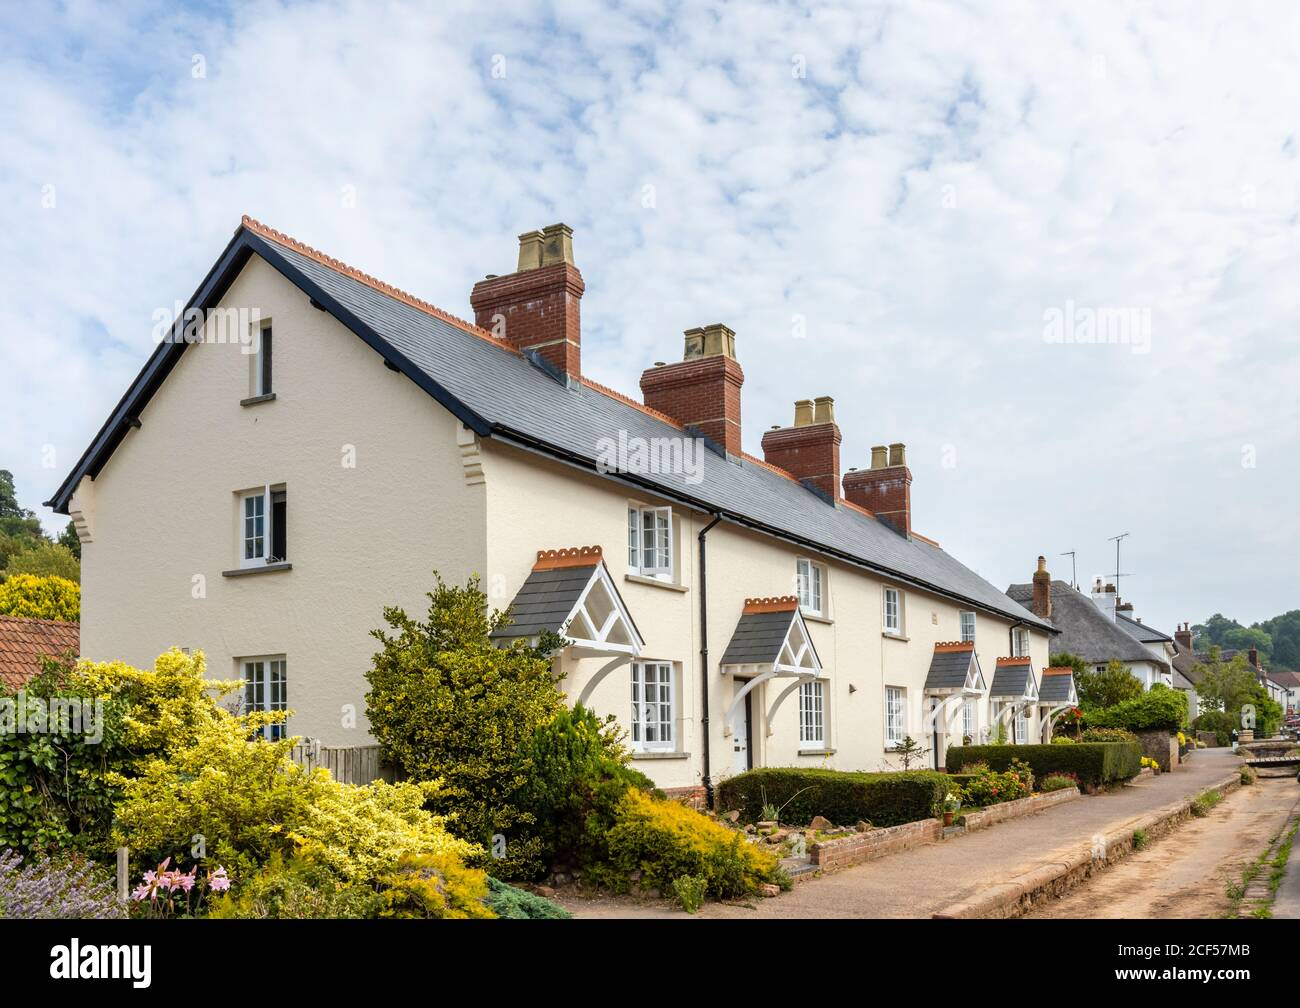 A row of pretty roadside cottages at Otterton, a picturesque quaint small village in the Otter Valley in East Devon, south-west England Stock Photo